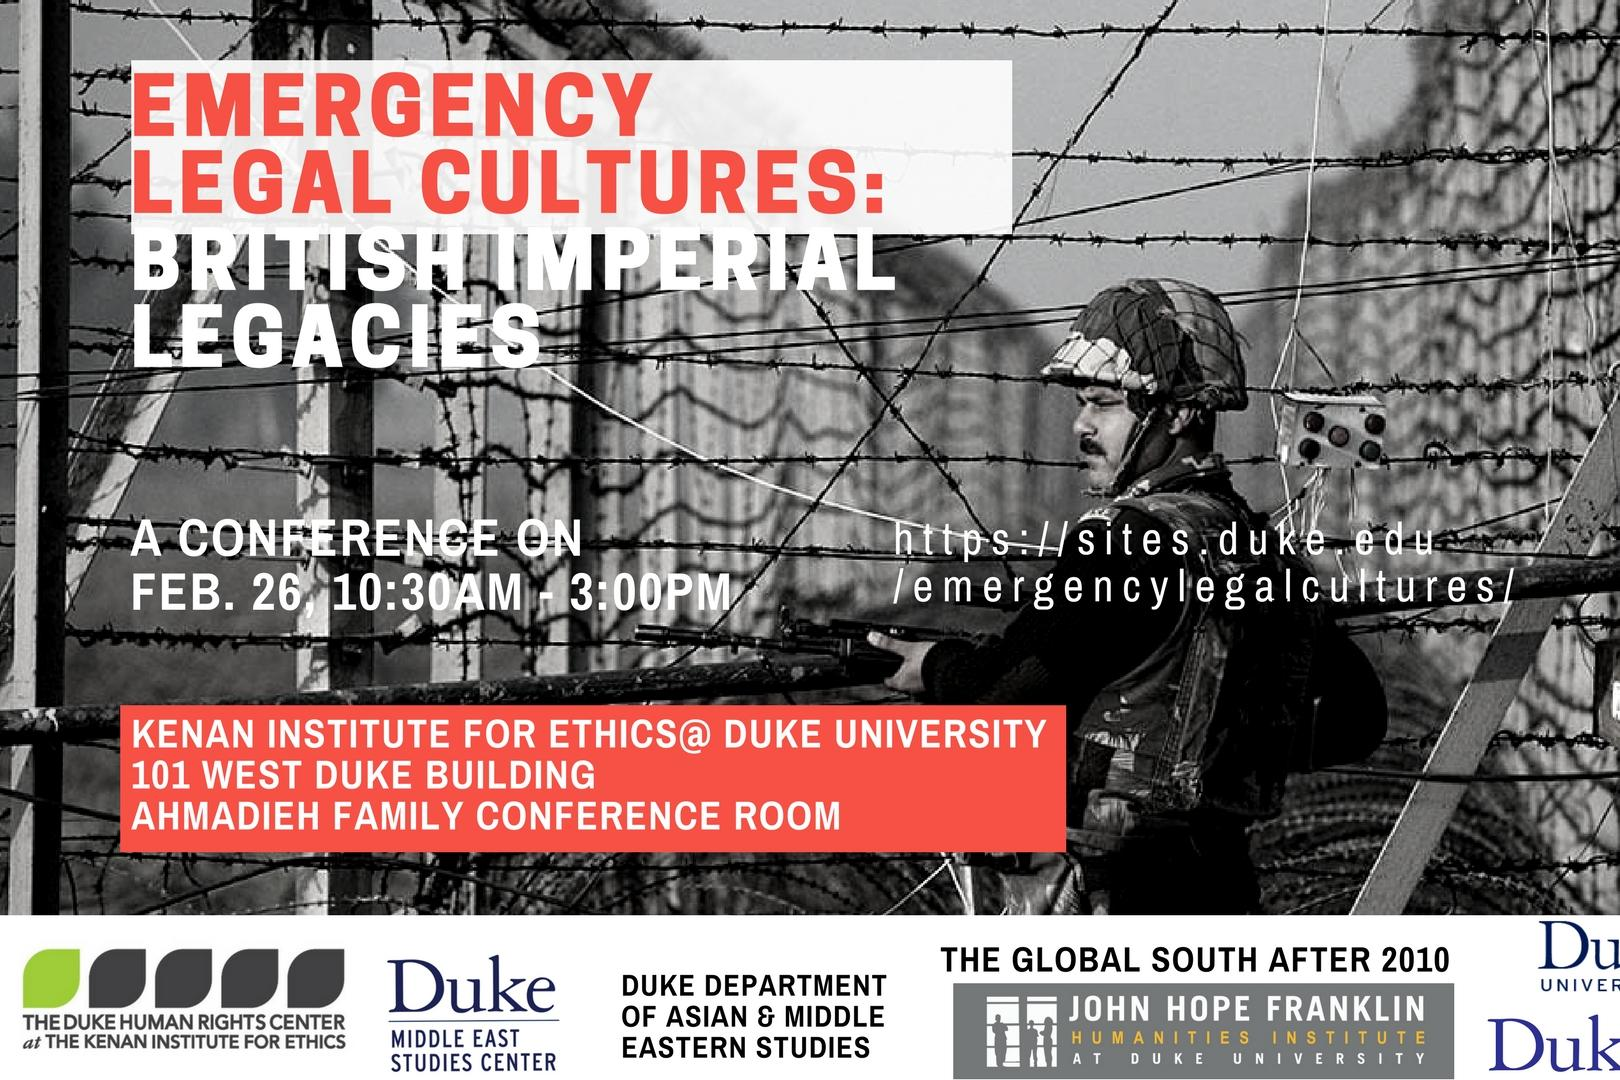 Emergency Legal Cultures